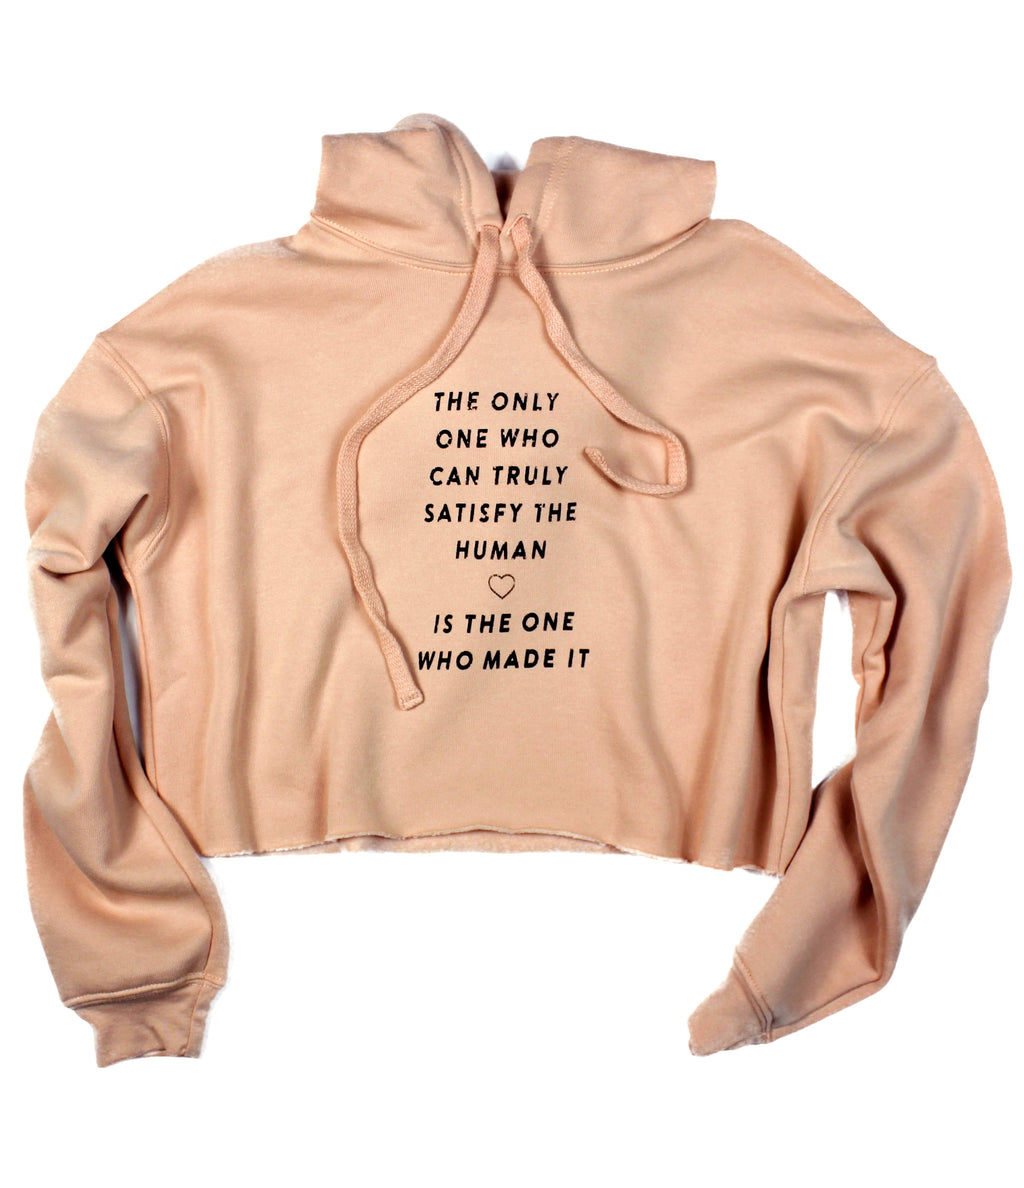 TRULY SATISFY ♡ PEACH CROPPED HOODIE